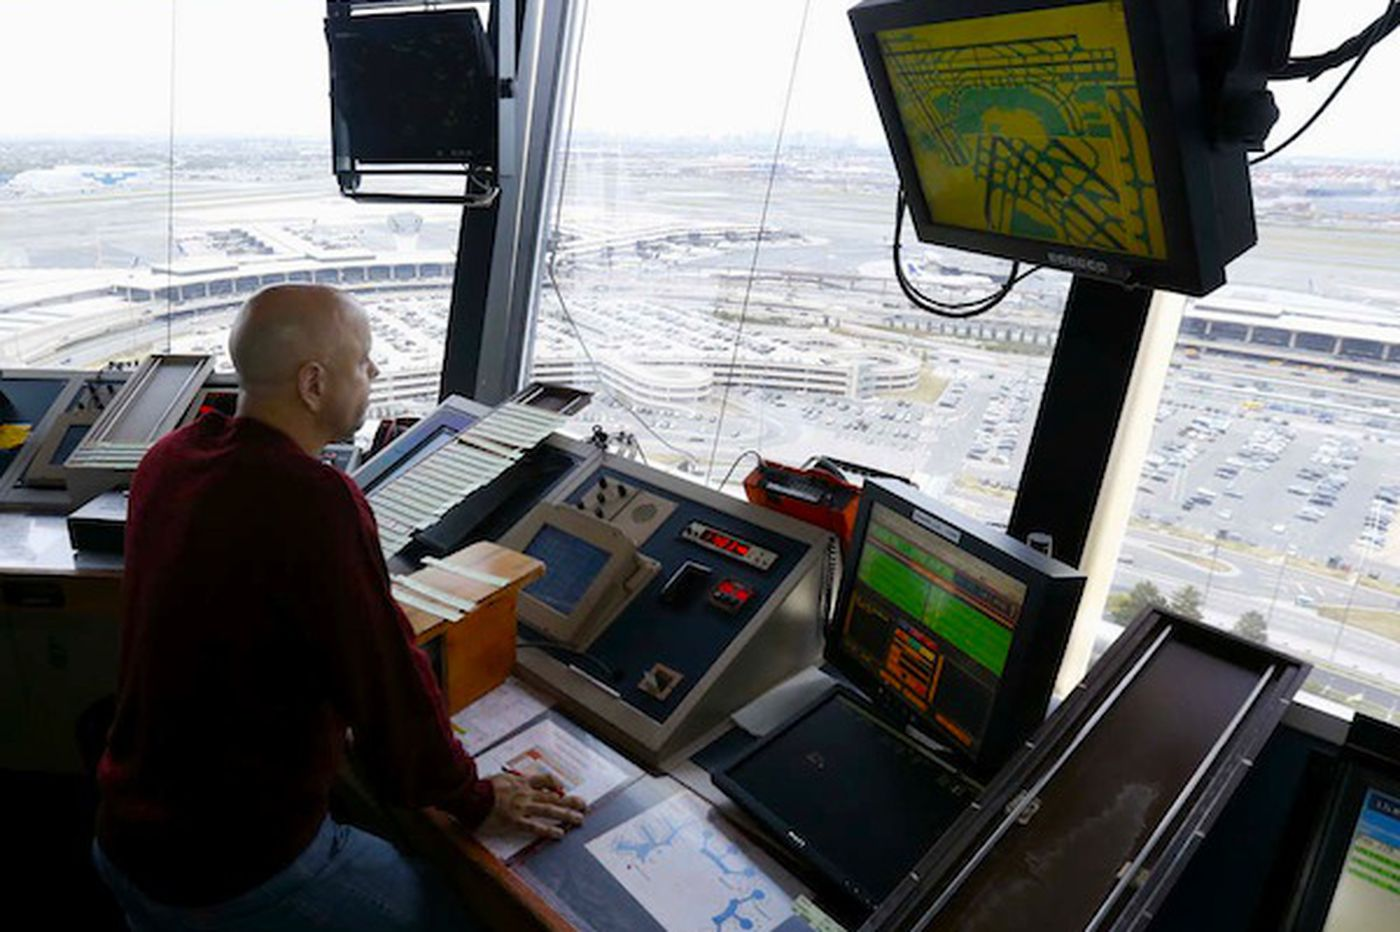 Should air traffic controllers be privatized?